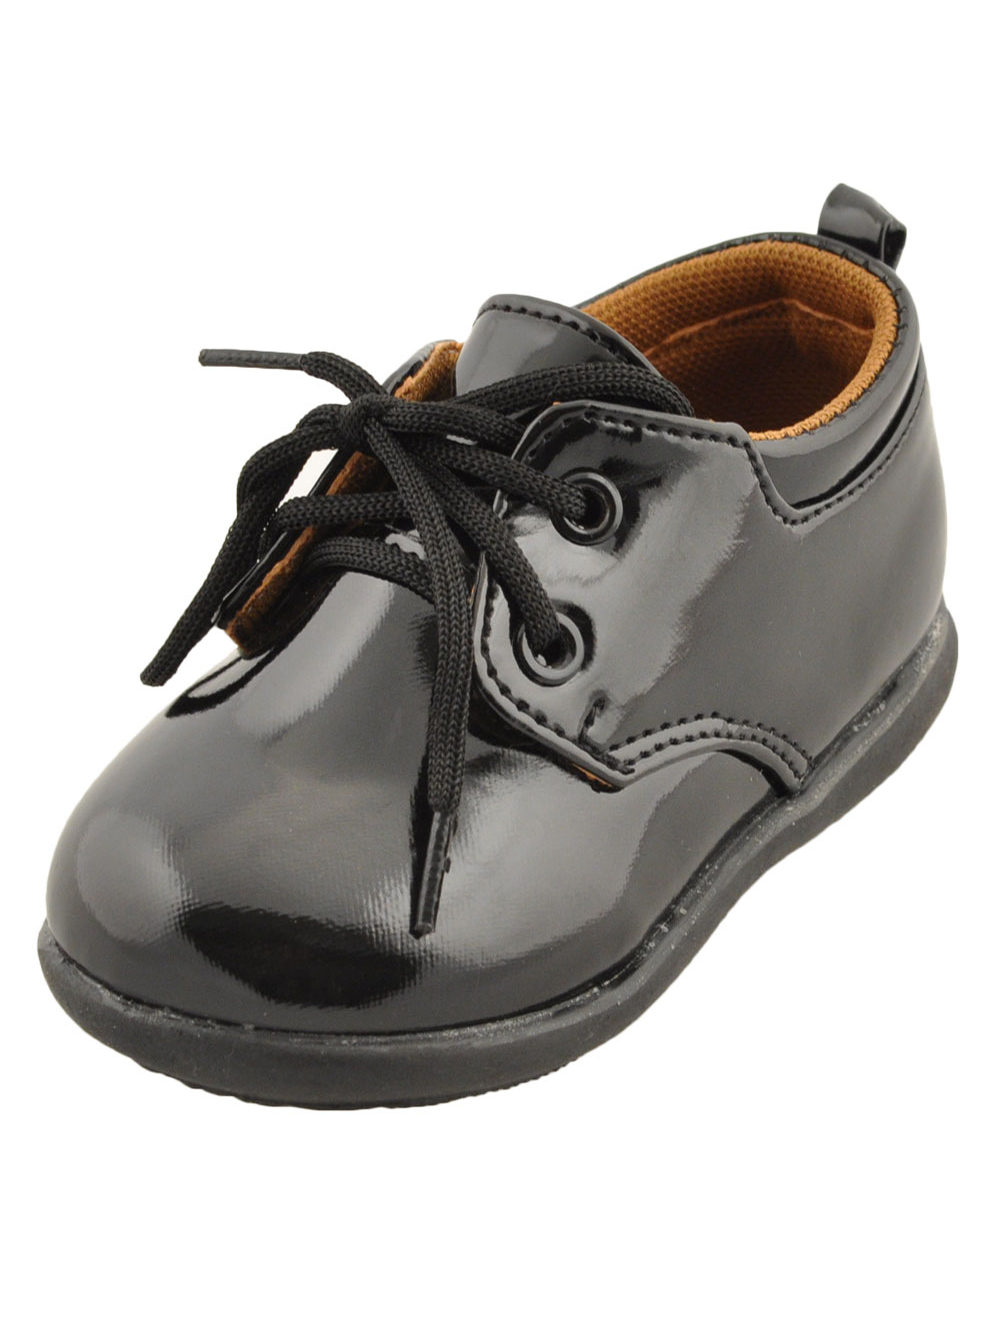 tendertoes patent leather oxford dress shoes infant boys